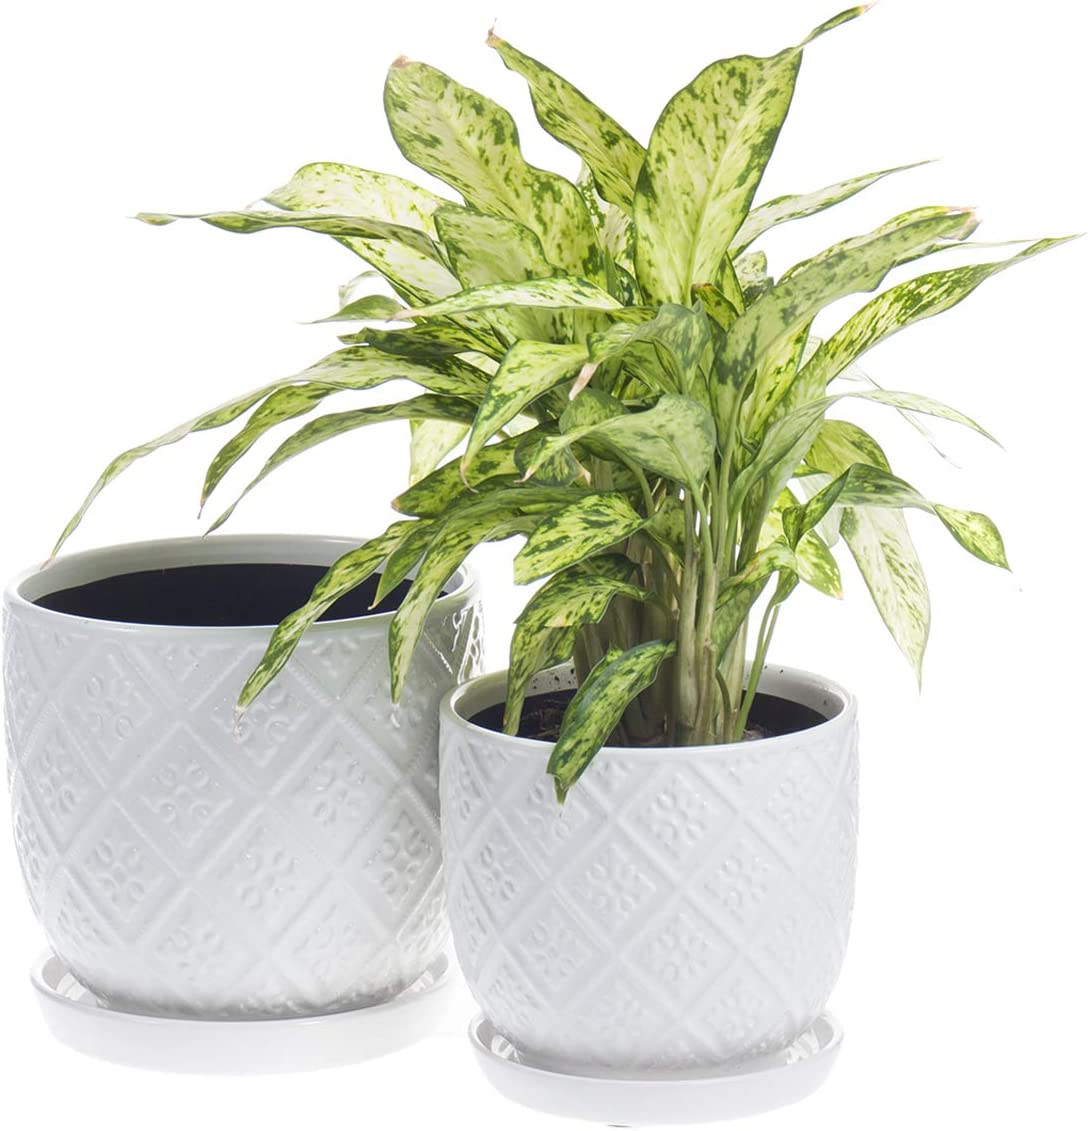 KYY National uniform free shipping favorite Ceramic Planters Garden Flower with and Pots Drainage Holes